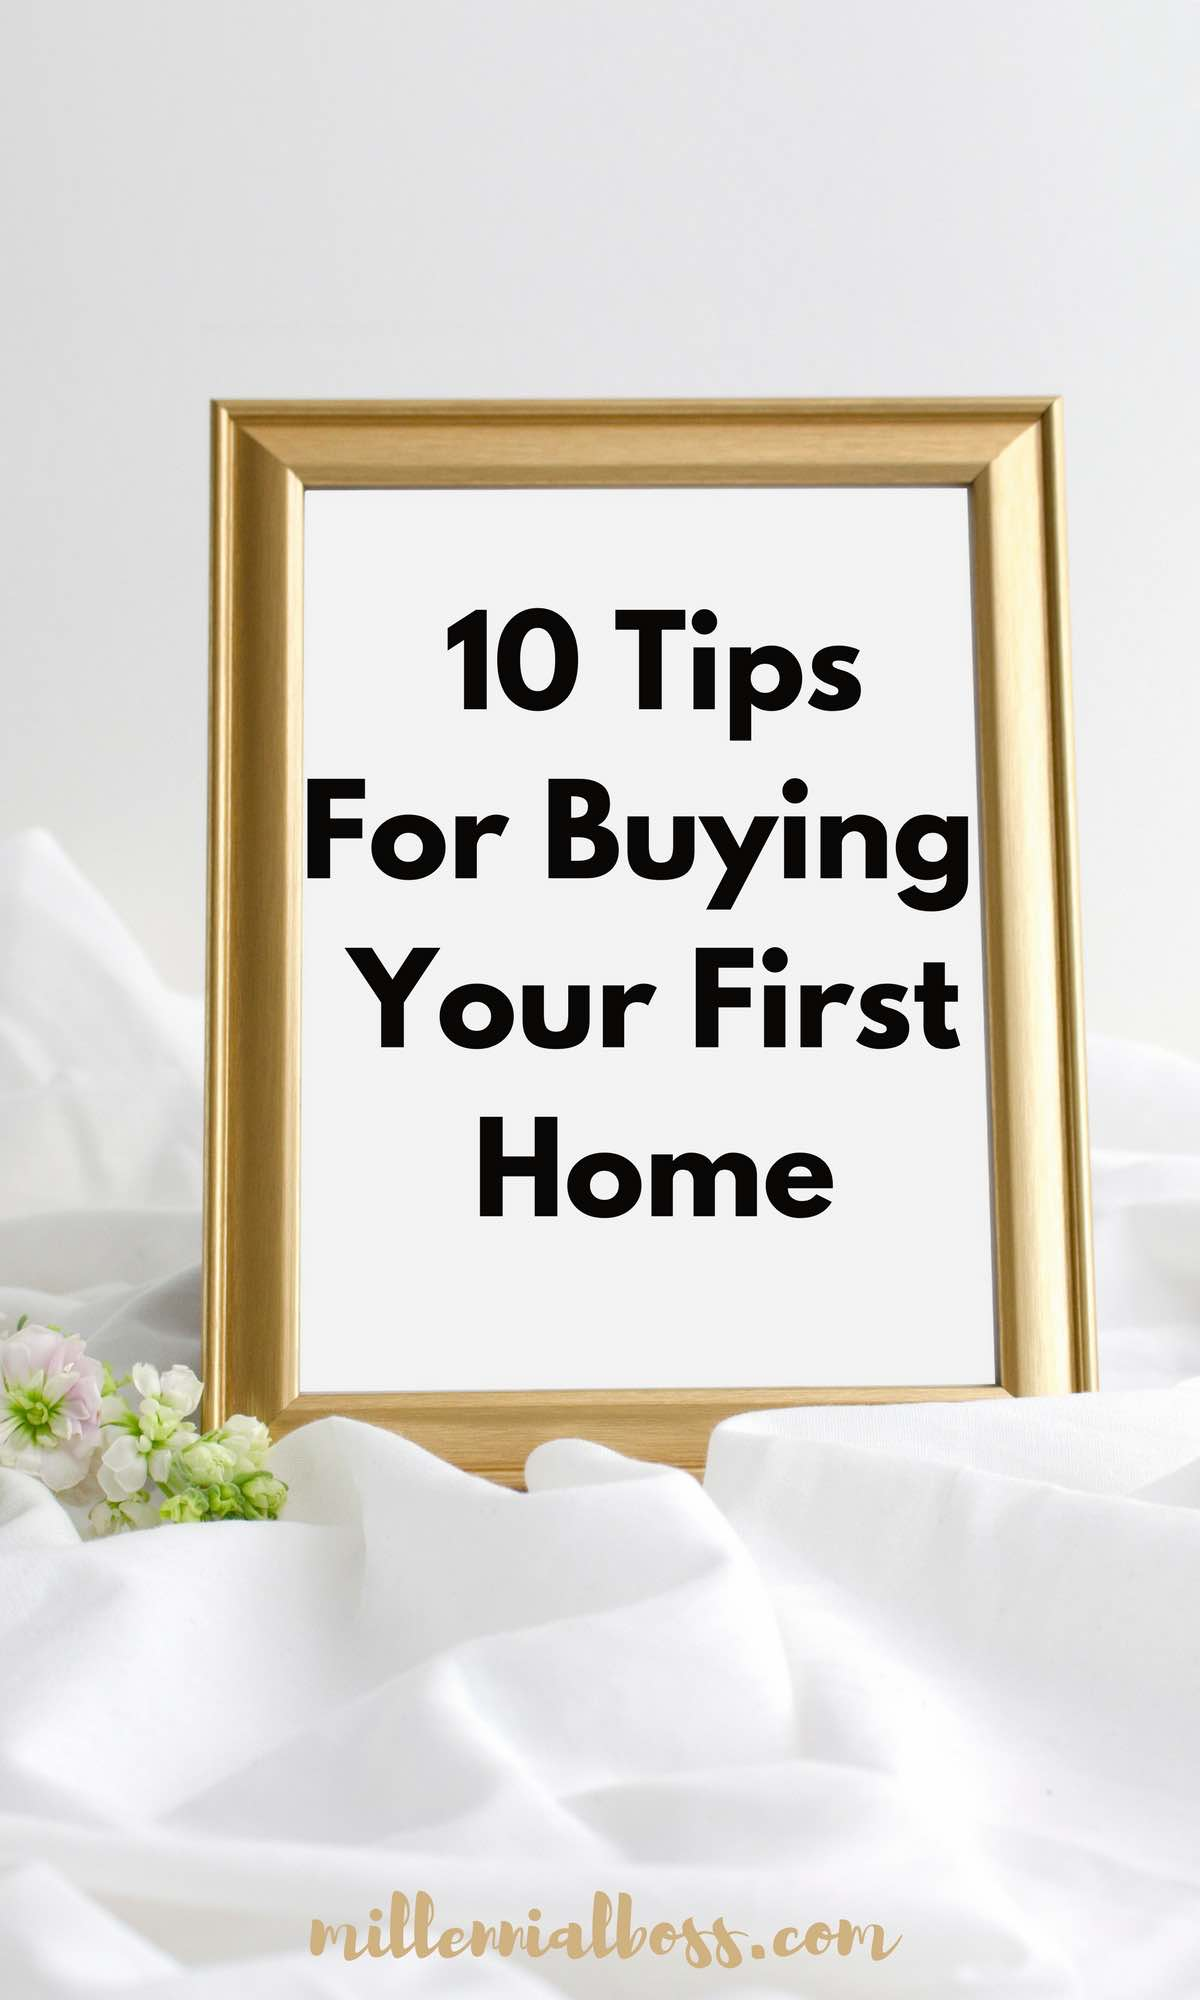 Tips for buying first home and tips for first time home buyers